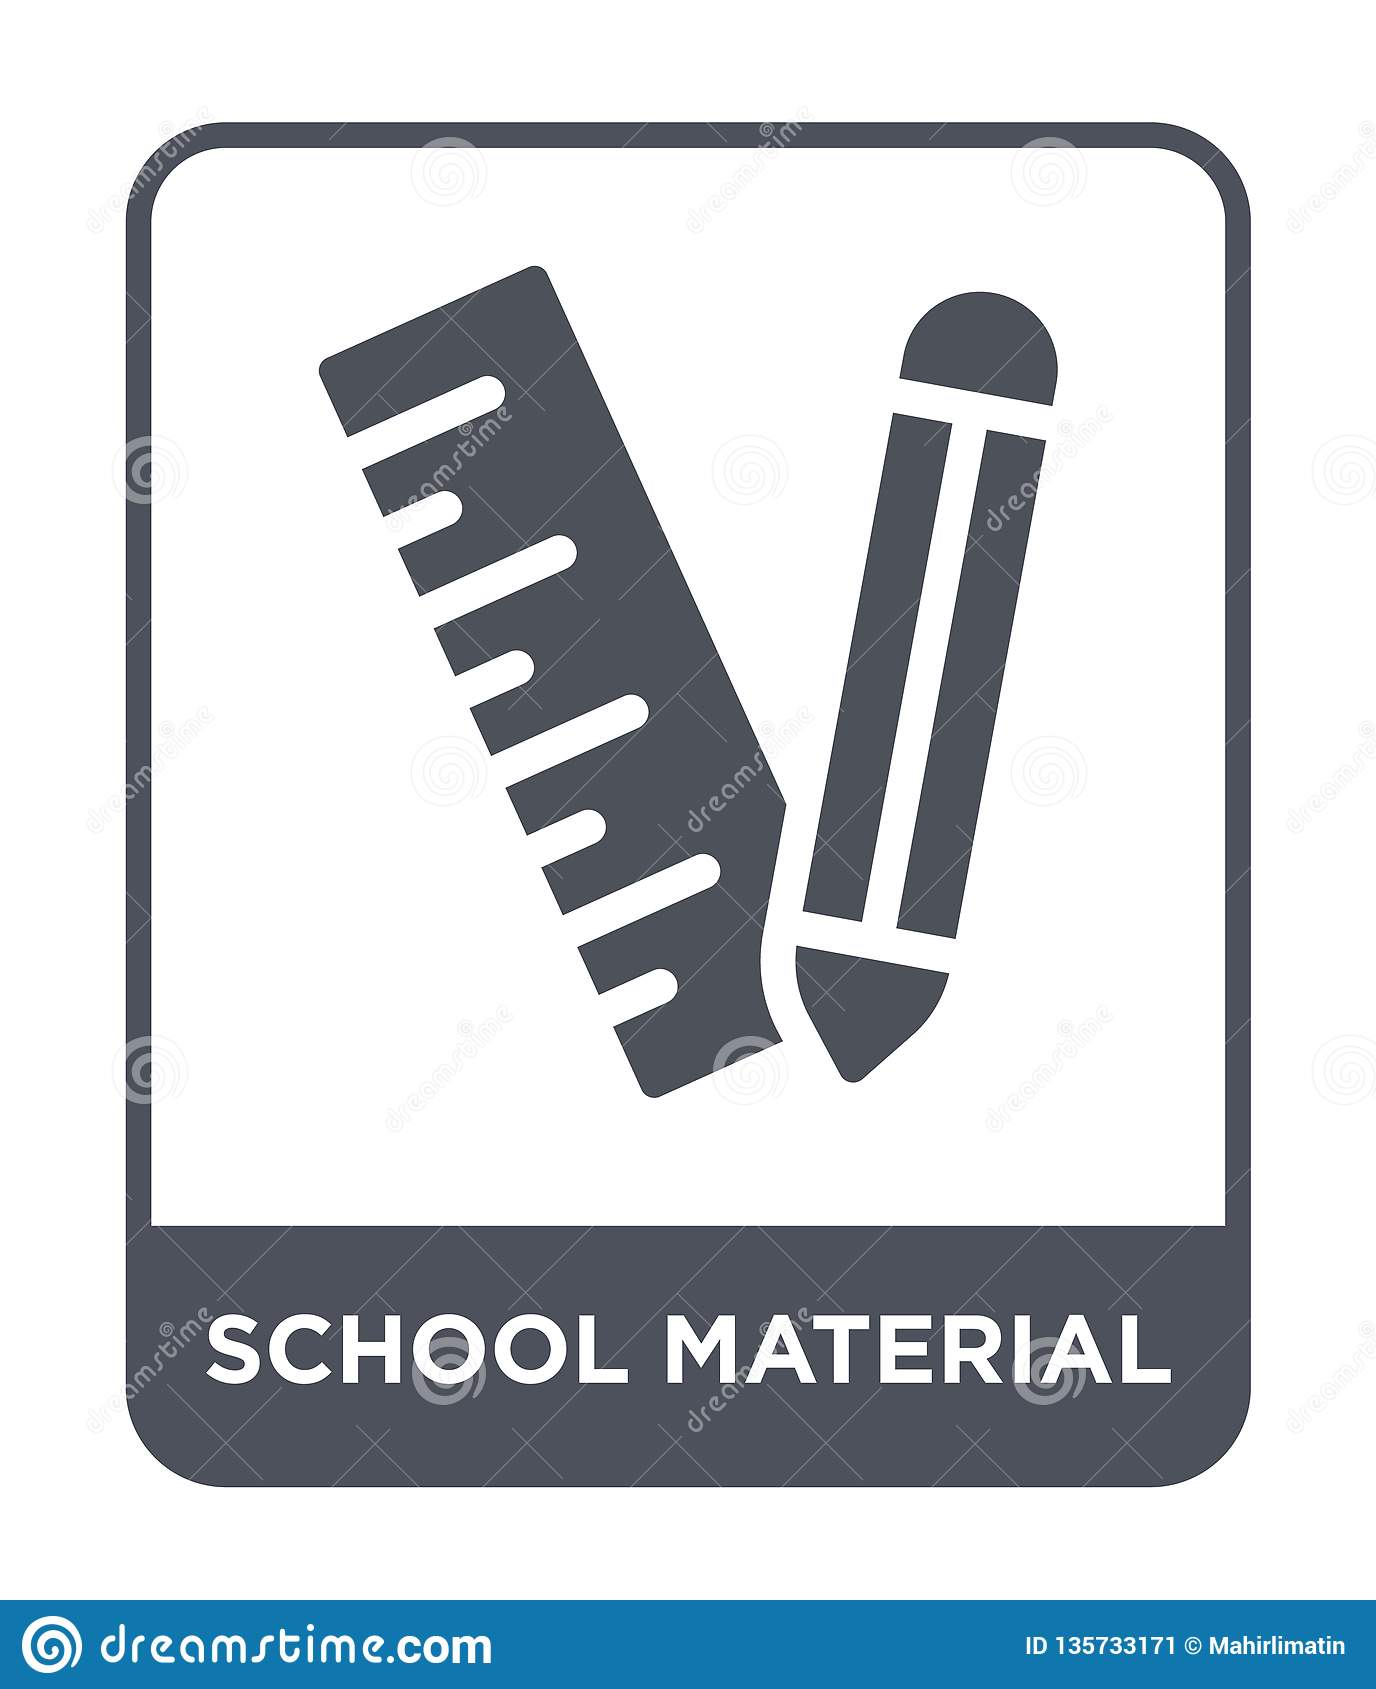 school material icon in trendy design style. school material icon isolated on white background. school material vector icon simple